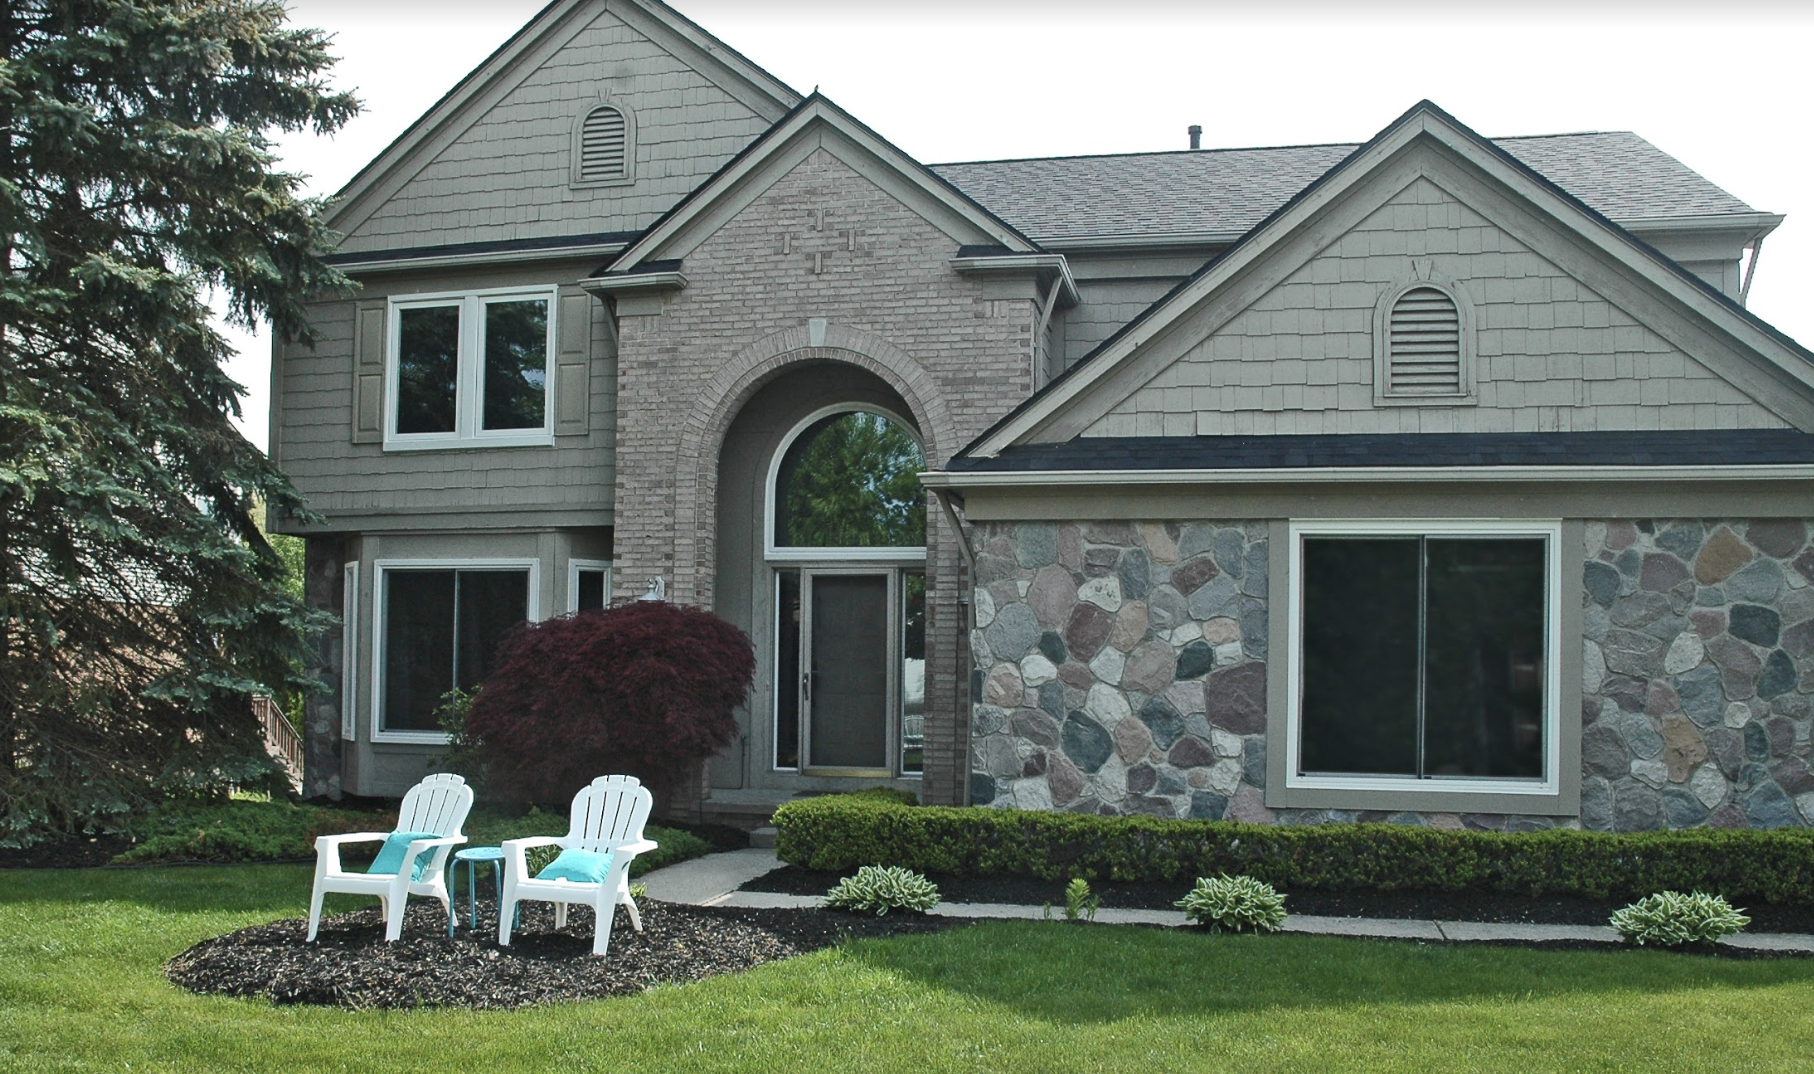 Wallside Windows contribute to curb appeal for those looking to sell a home.